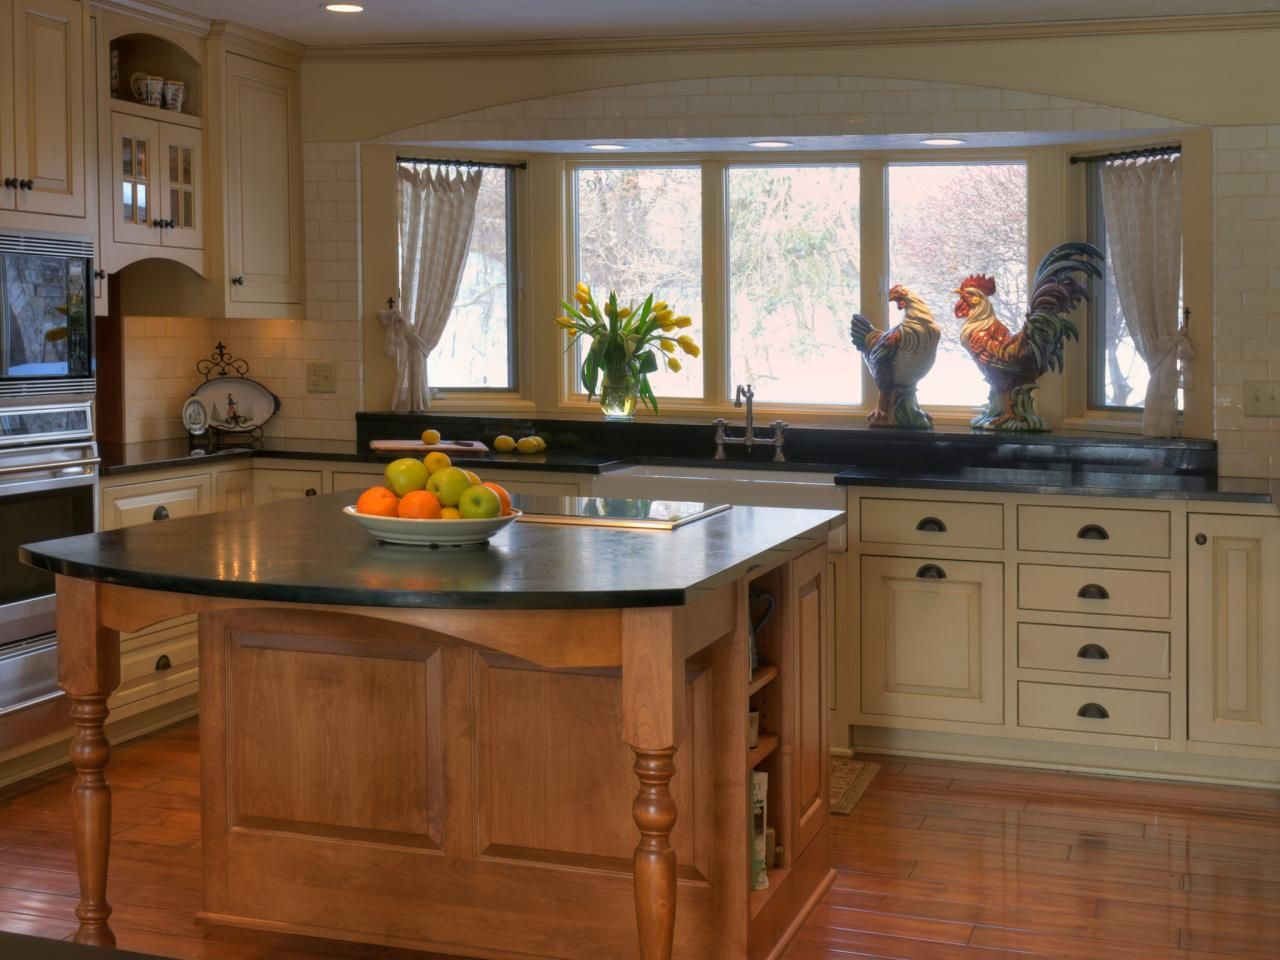 Top Kitchen Design Styles: Pictures, Tips, Ideas and Options | Kitchen Designs - Choose Kitchen Layouts & Remodeling Materials | HGTV